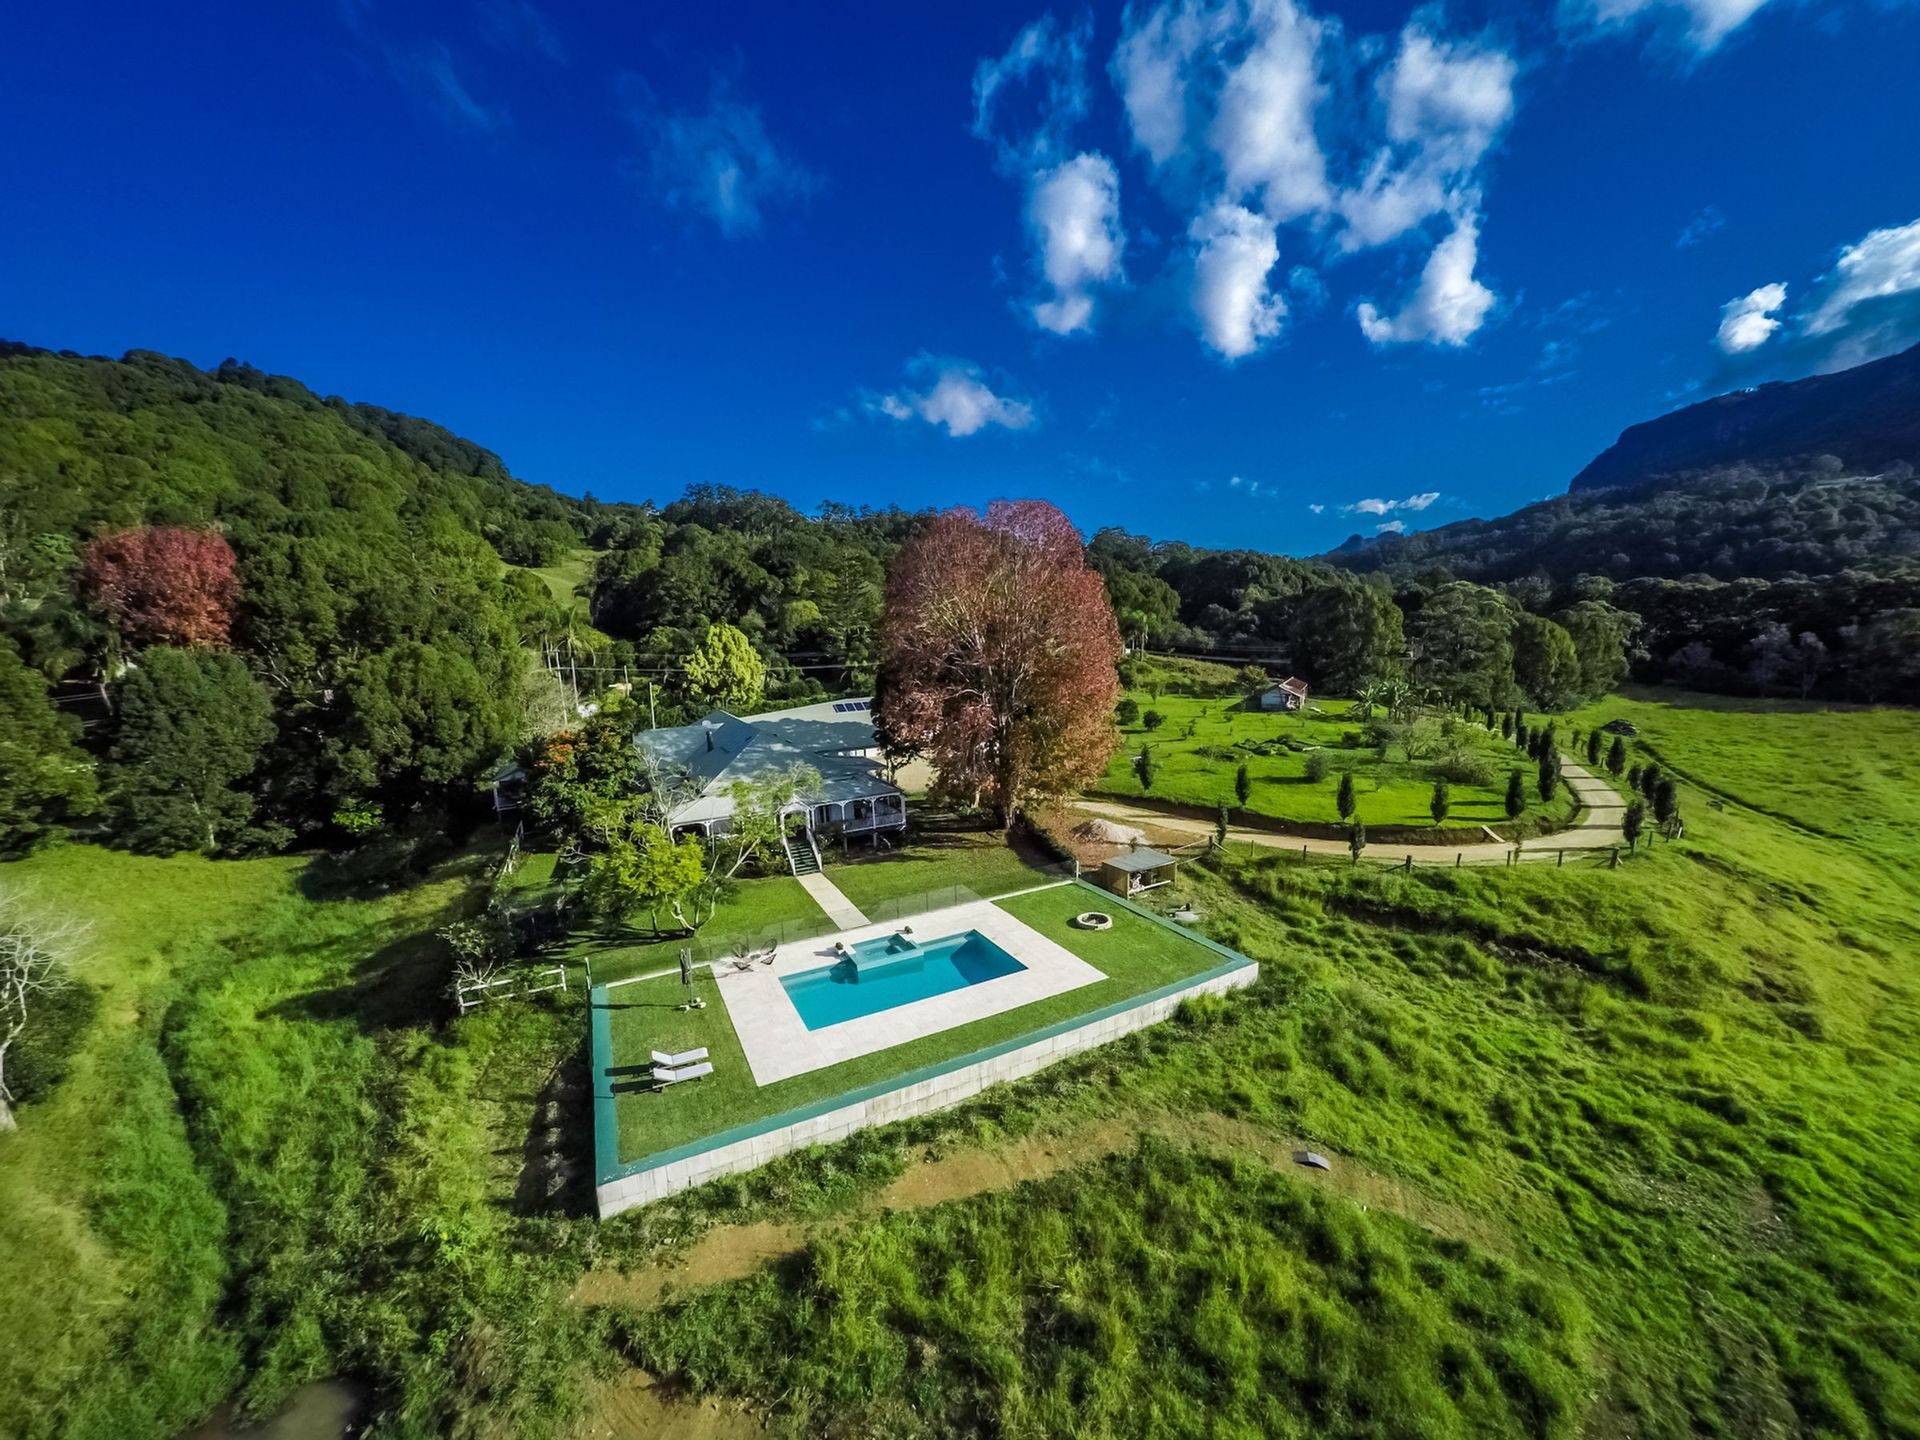 the ultimate privacy Hillview Homestead offers